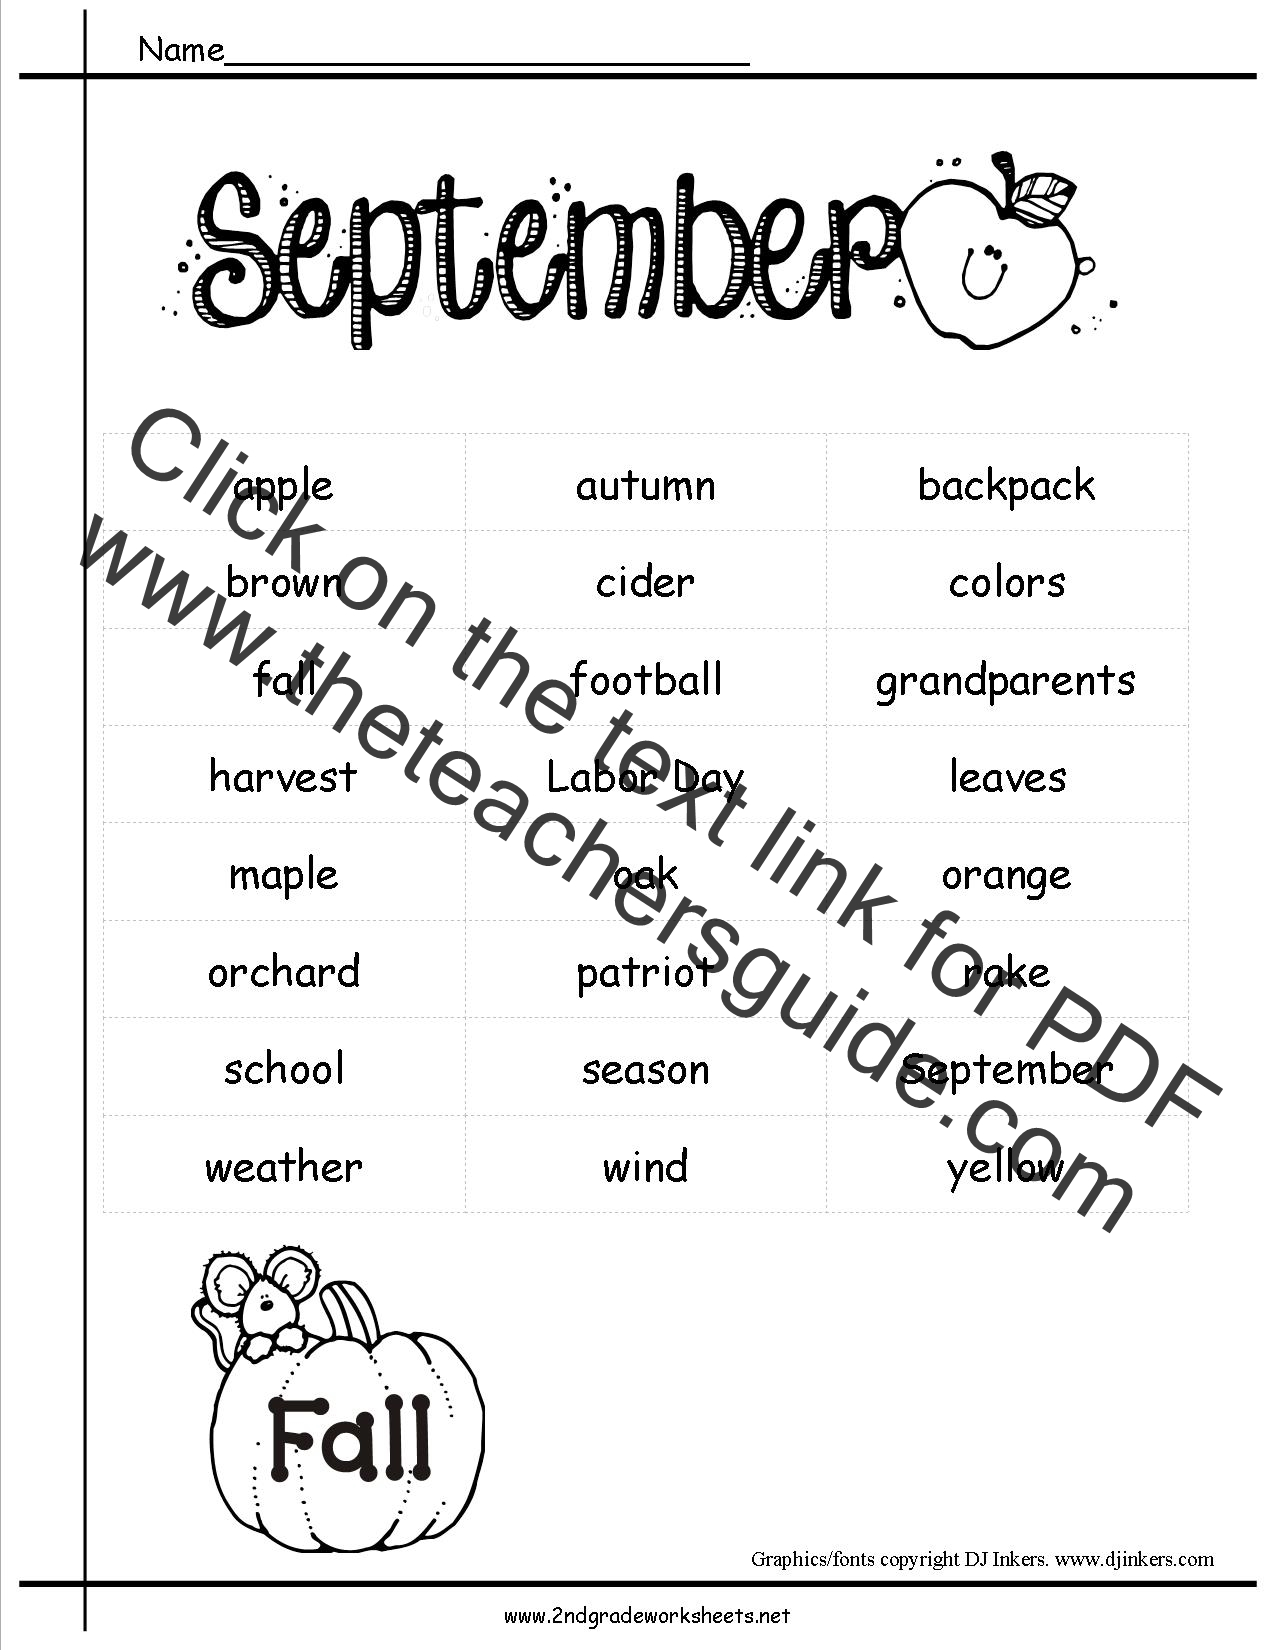 September Holidays Themes Lesson Plans Printouts And